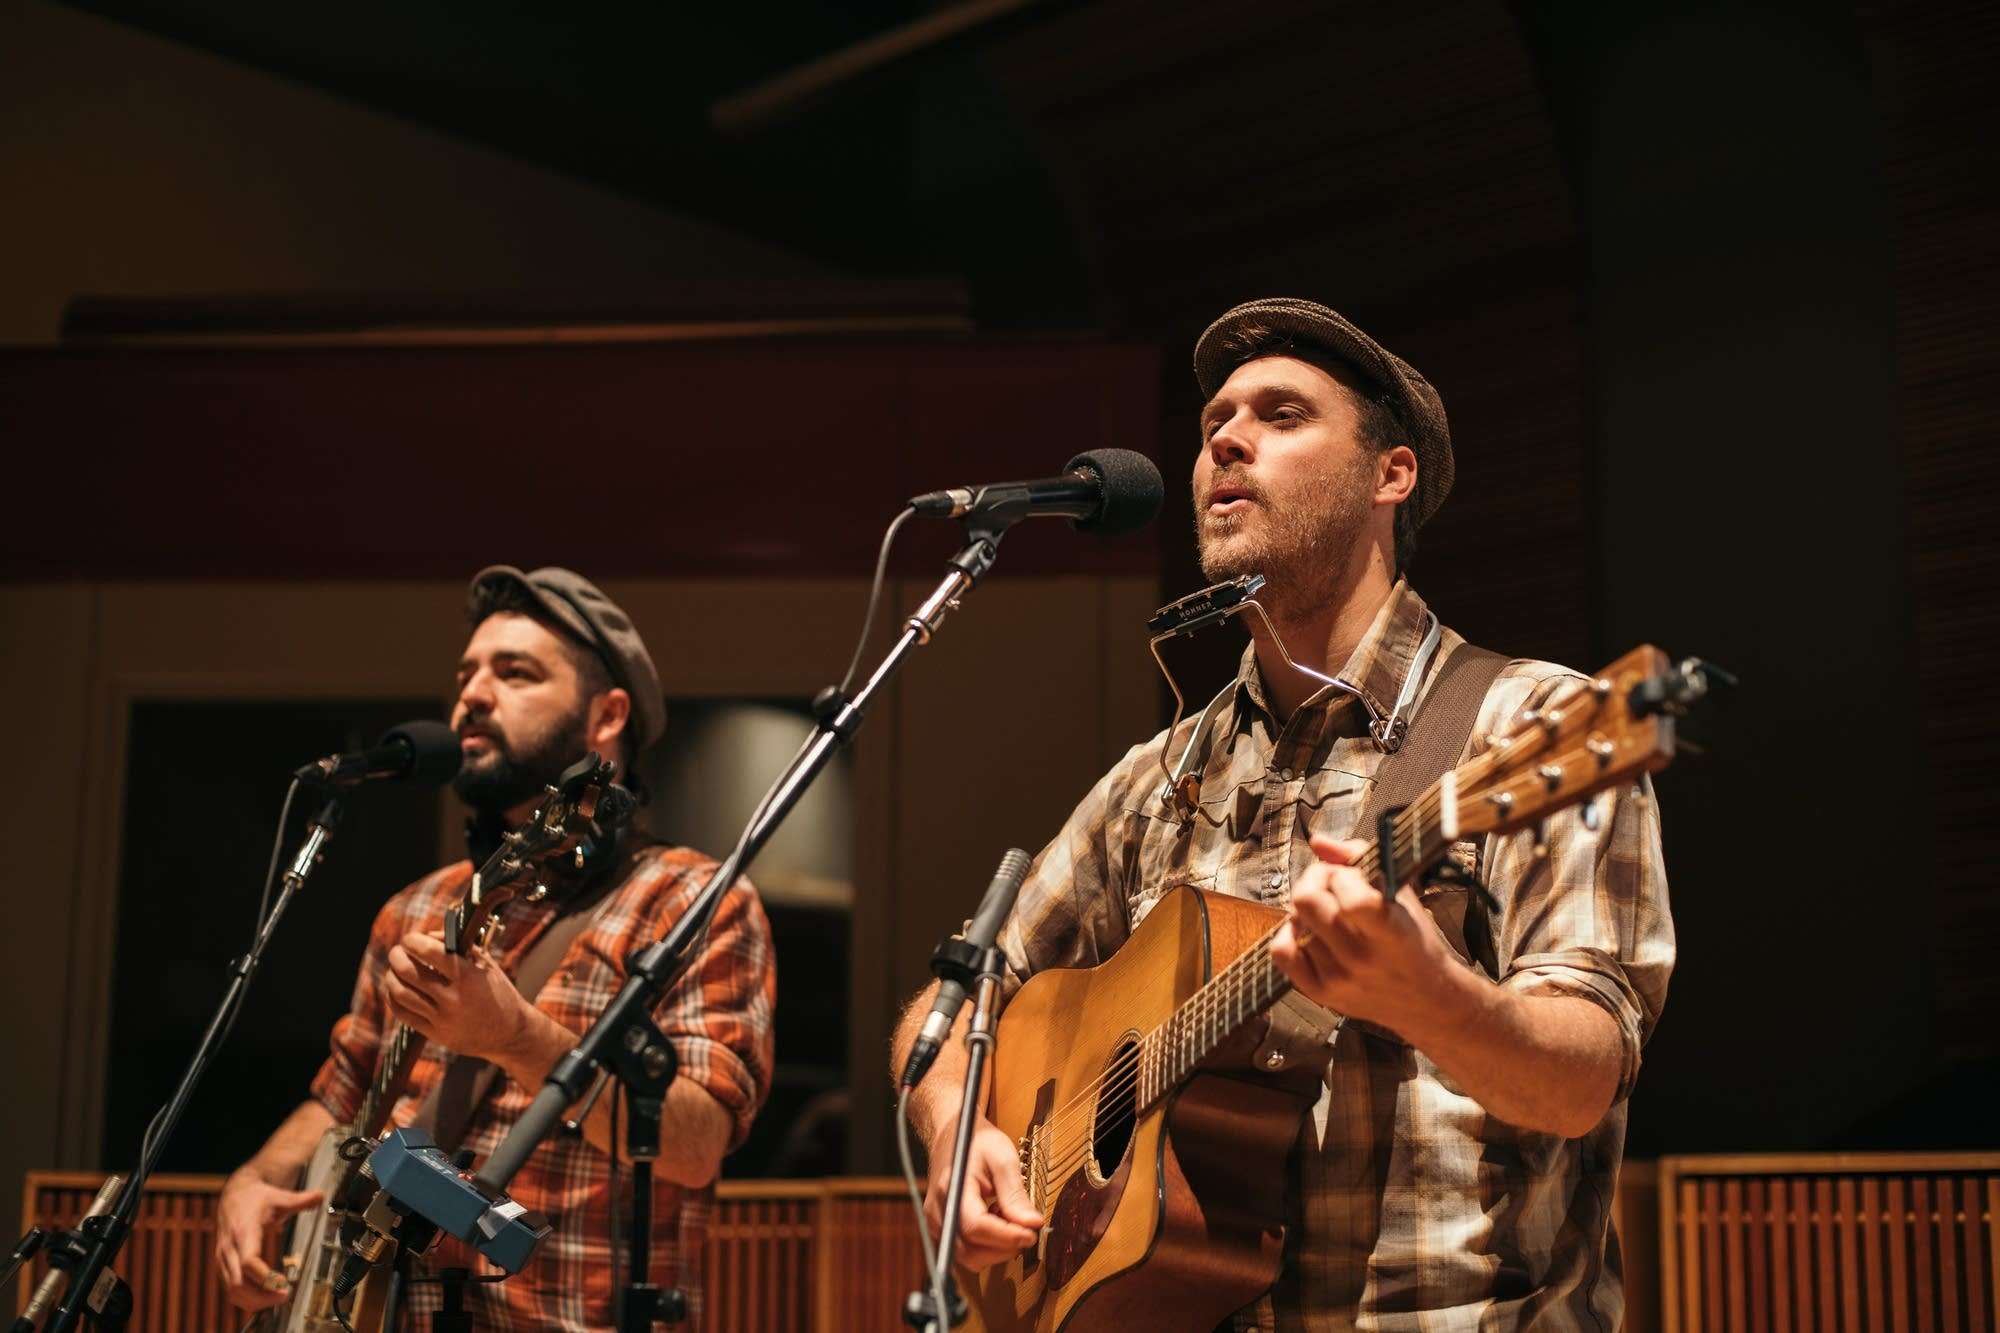 The Okee Dokee Brothers perform at Radio Heartland